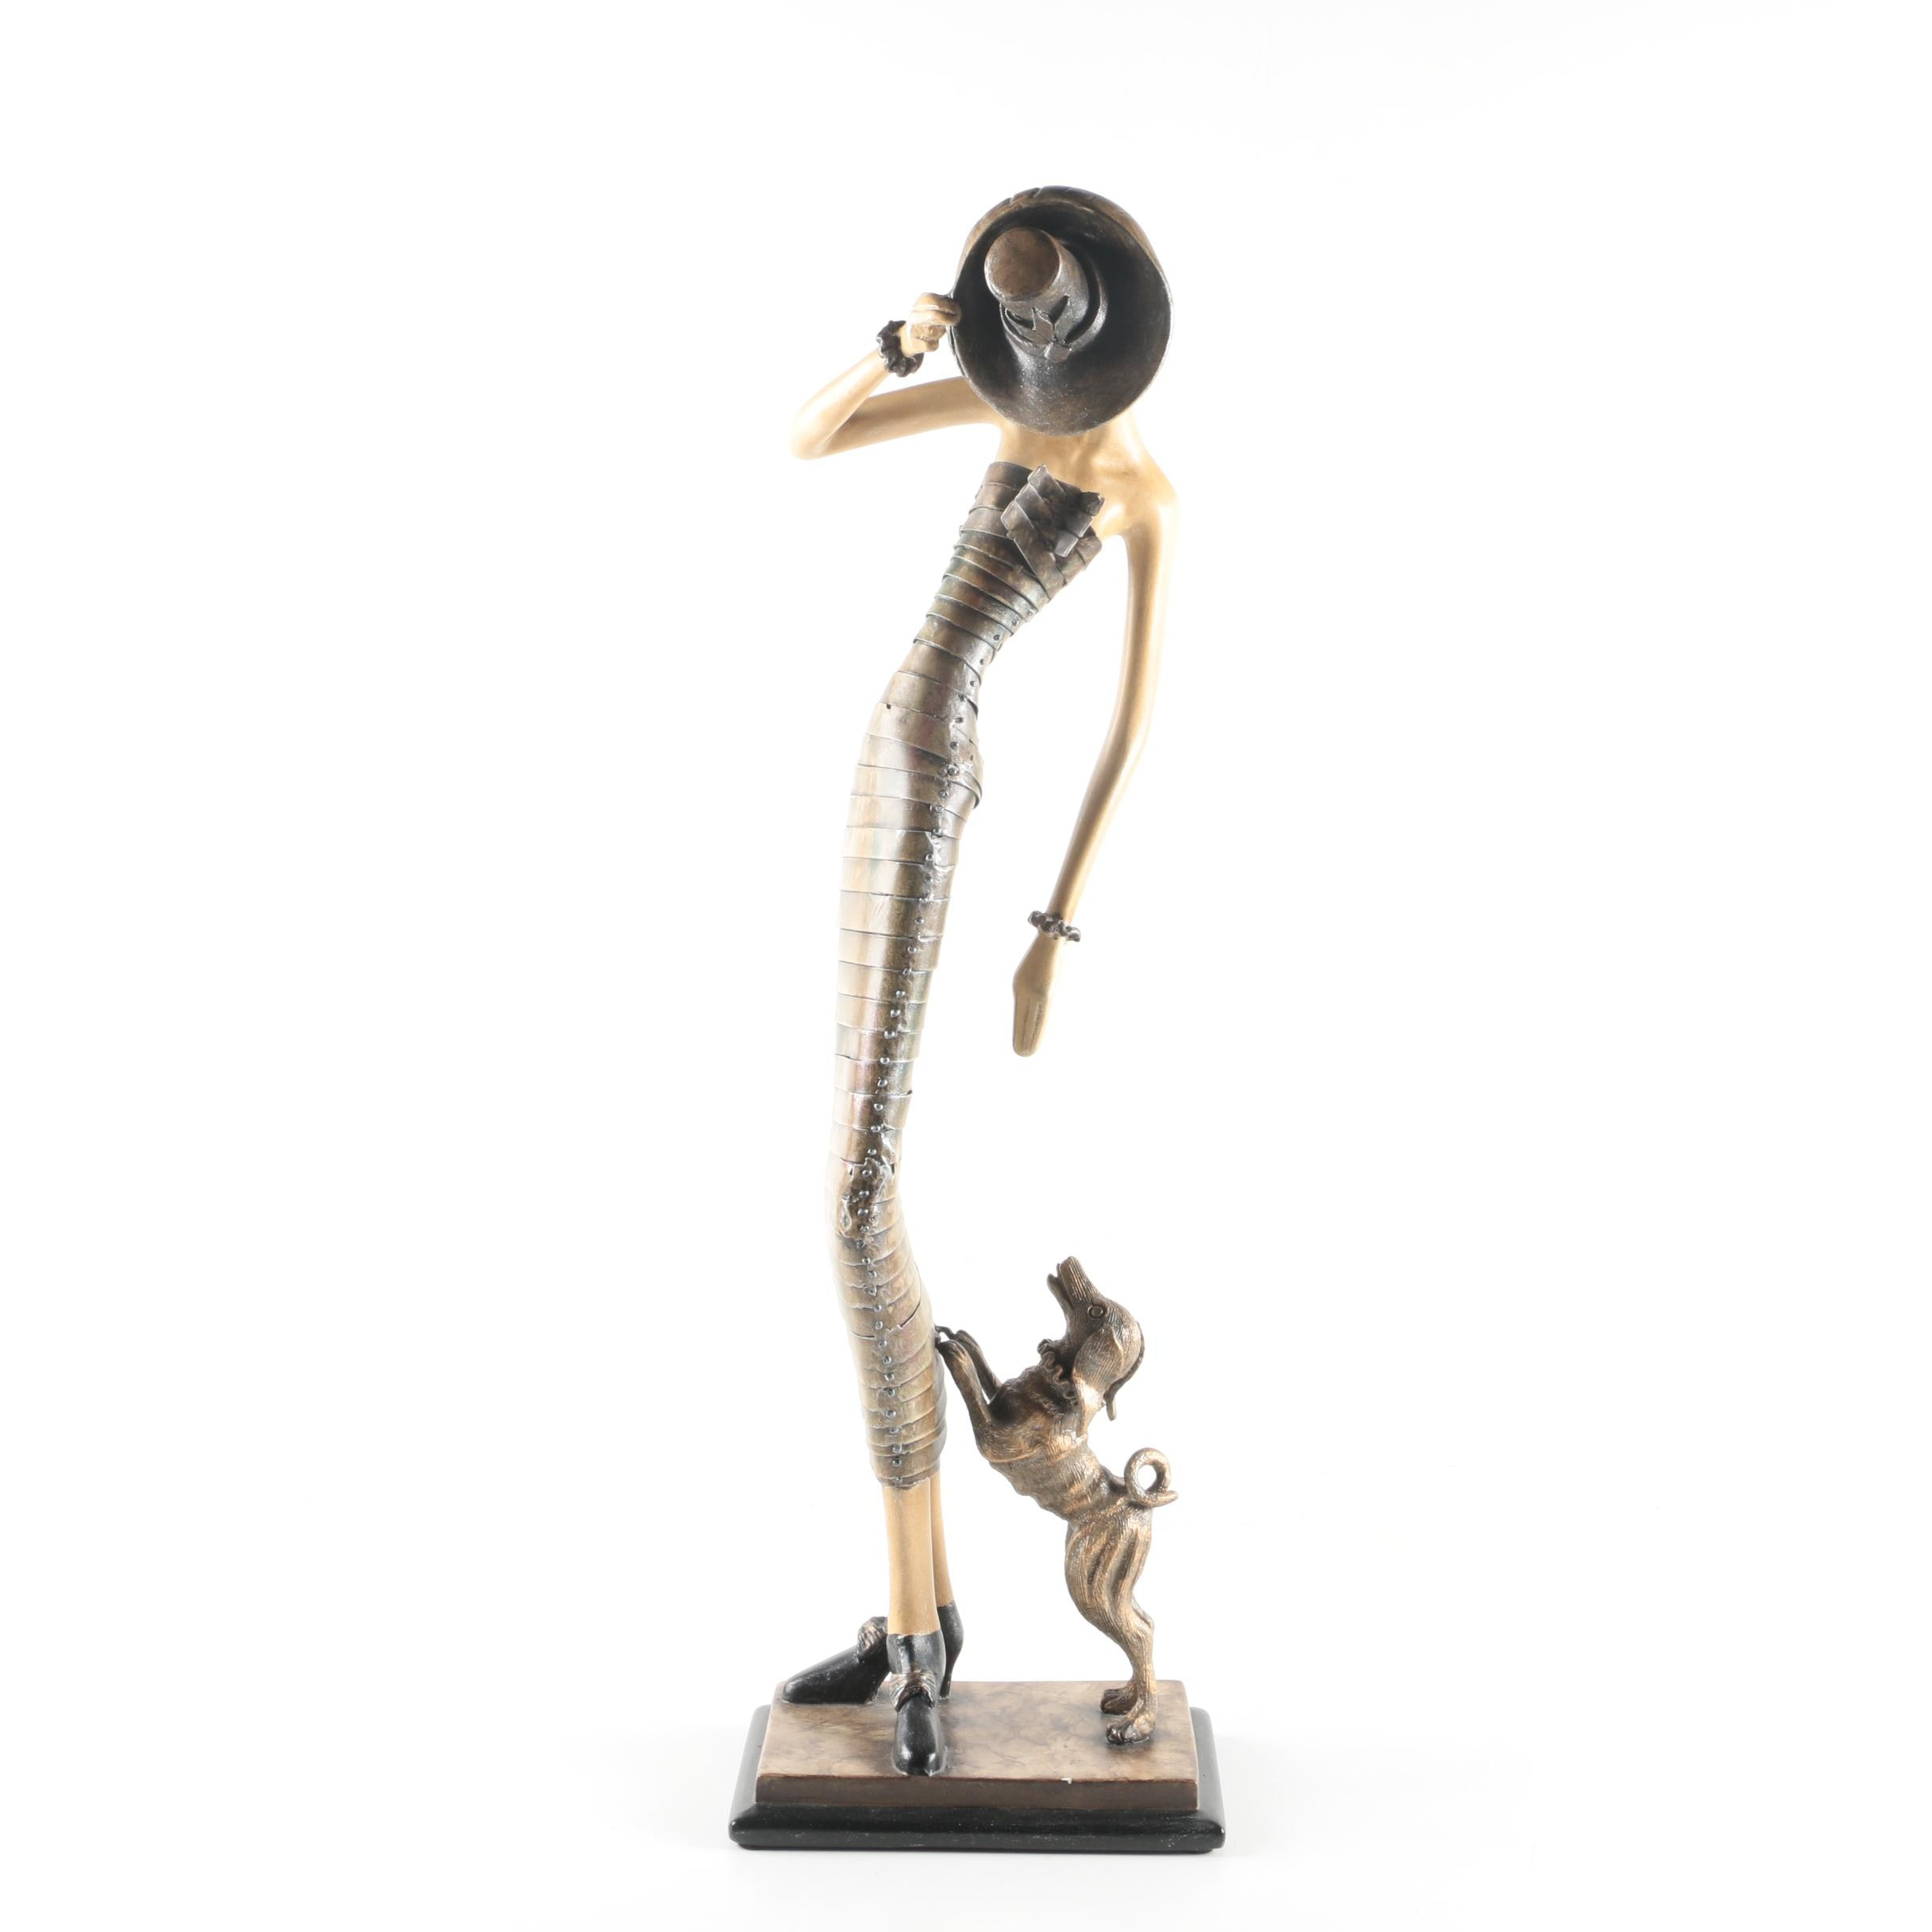 Art Deco Style Figurine depicting a Woman and Dog by Artmax